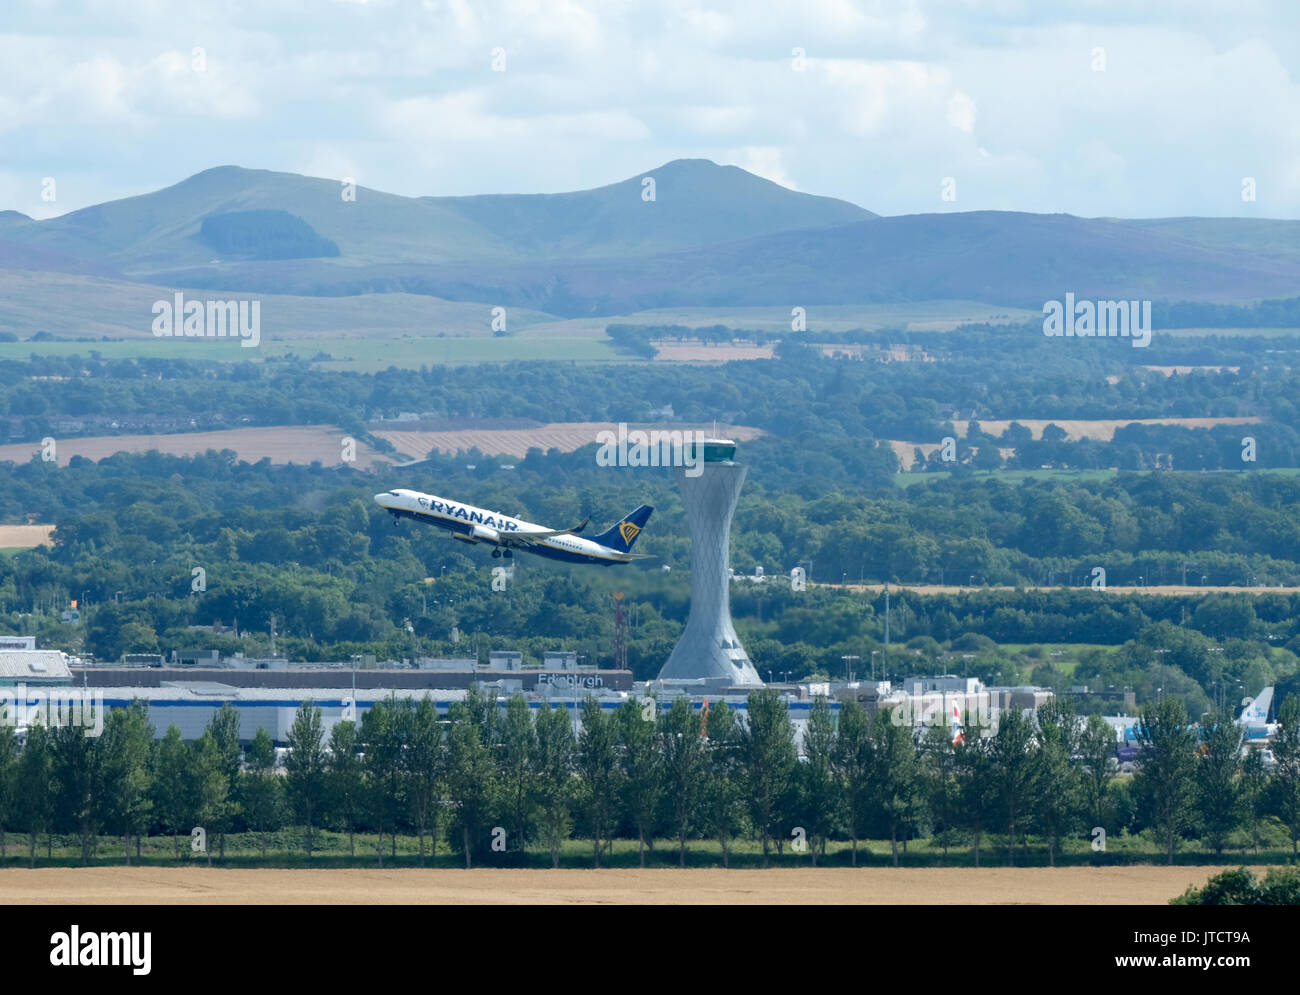 A ryanair passenger aircraft takes off from Edinburgh airport. - Stock Image